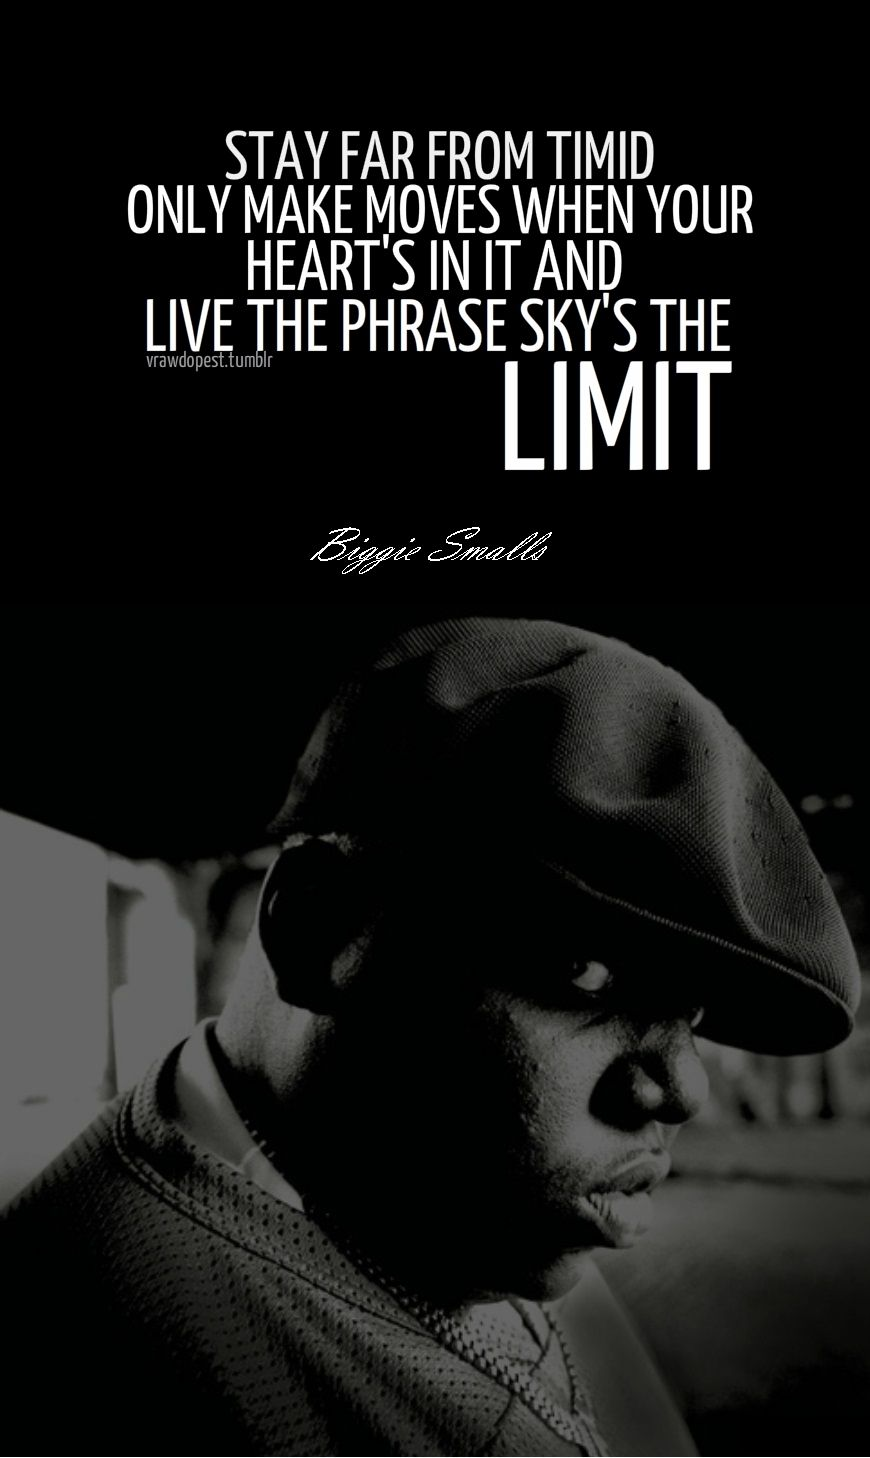 Skys The Limit Biggie Smalls Ke Moves When Your Hearts In